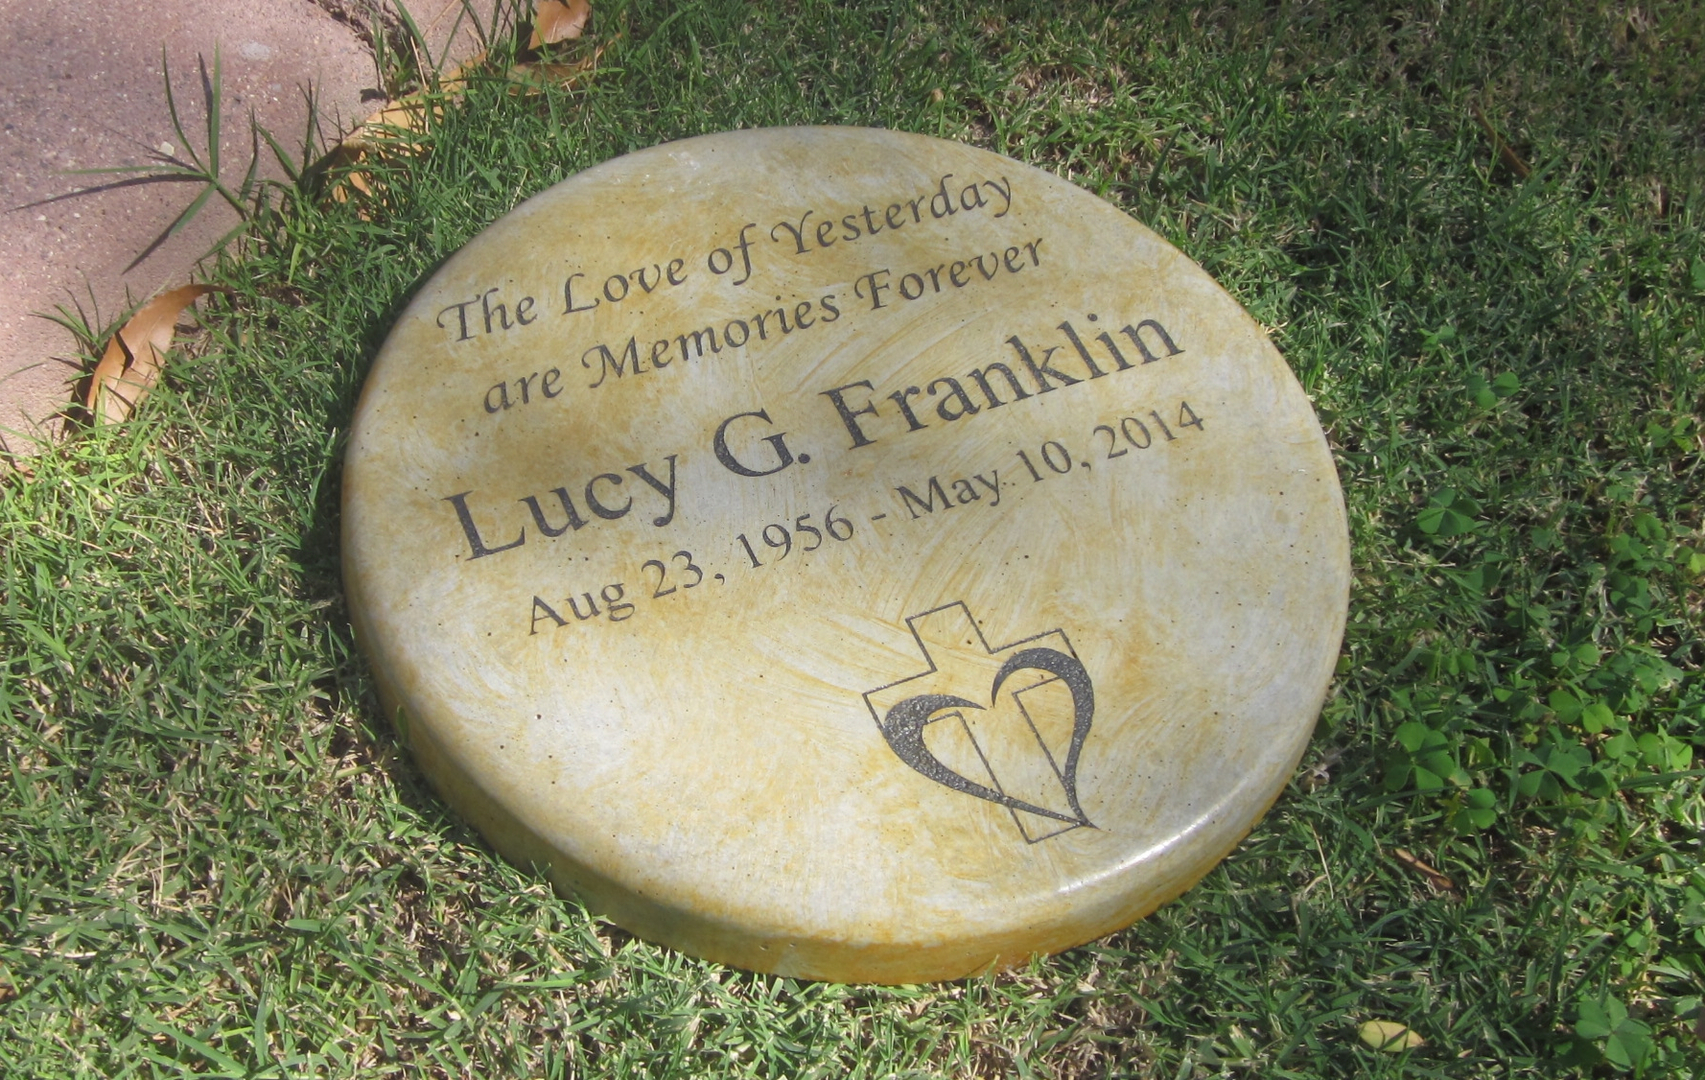 Remembrance Stones Garden Pet memorial garden stones memories to stone the garden stones adds character and beauty to any landscape very versatile and works well with any decor pay tribute to a loved one pet or the special workwithnaturefo